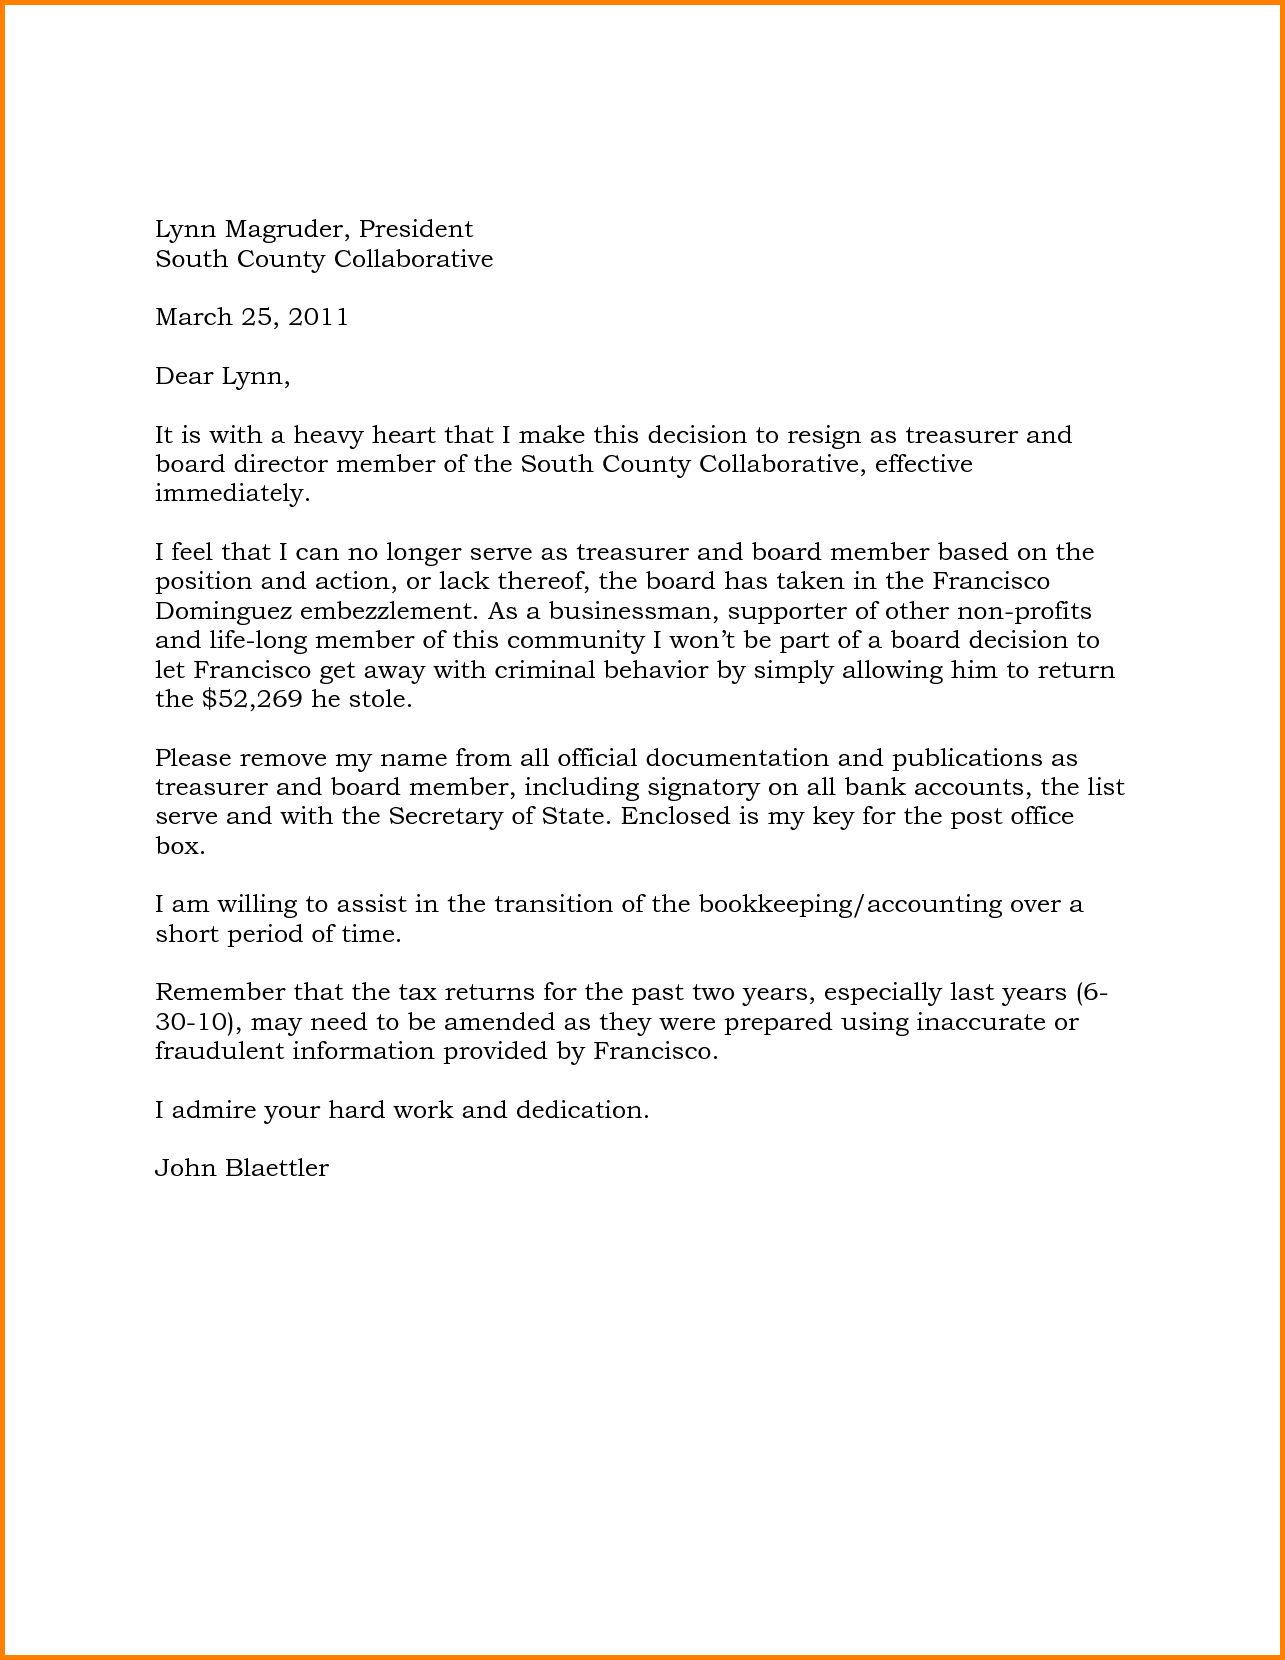 board member removal letter template example-Resignation Letter From Board Highest Clarity Sample Non Profit Member Great Example Treasurer Position pany Directors 15-c